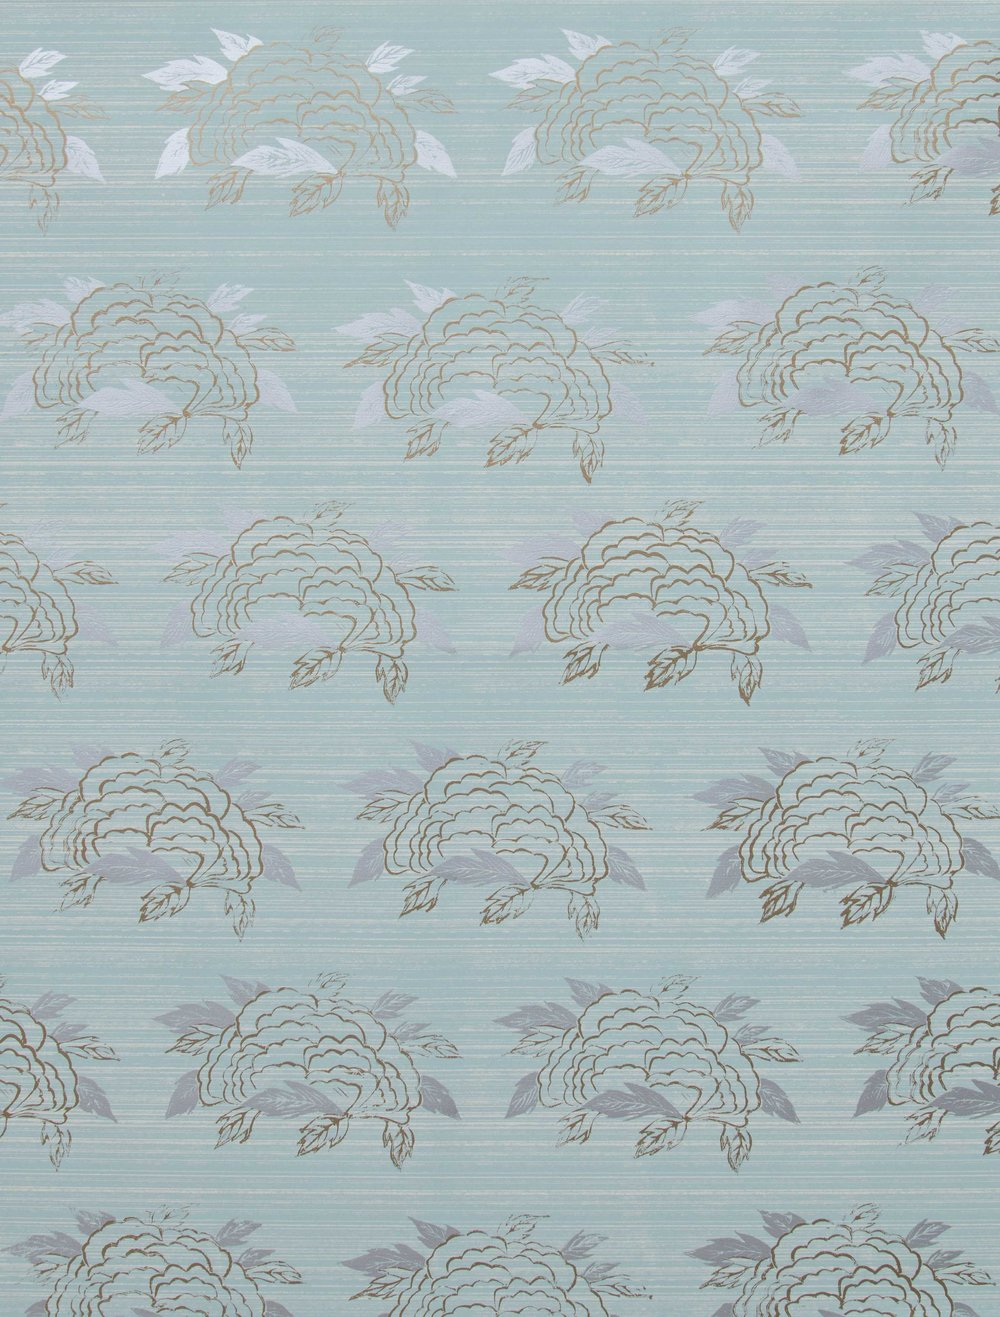 Krane Home_SL130-03 Chrysanthemum Celadon Wallpaper-3.jpeg